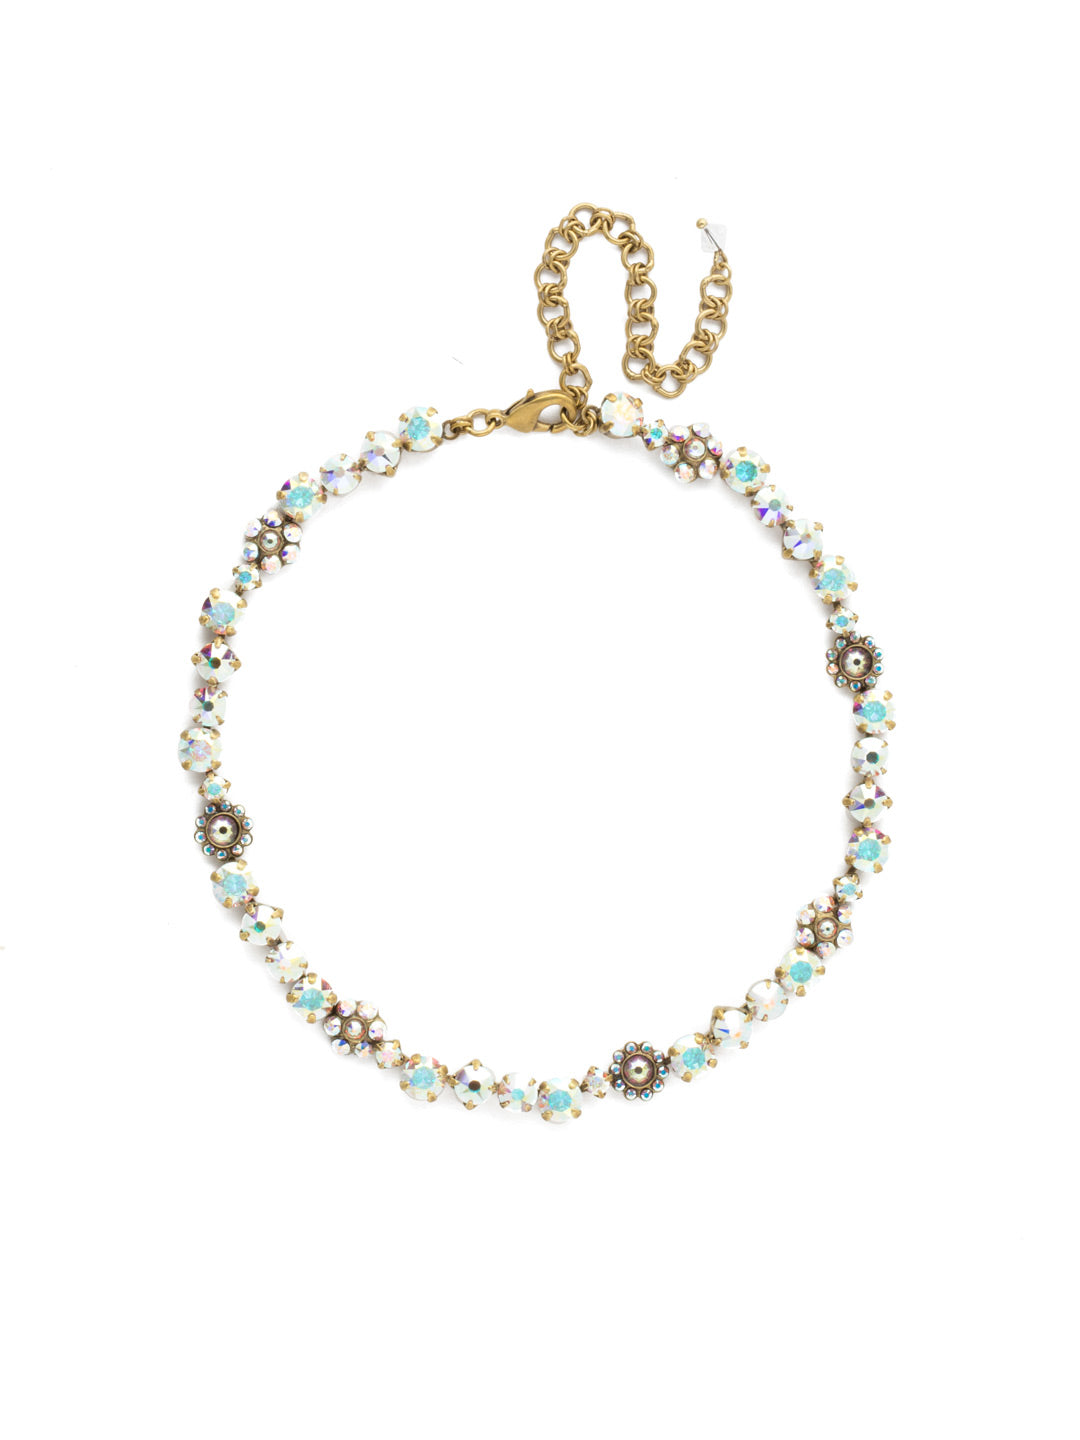 Classic Floral Tennis Necklace - NBE2AGSNF